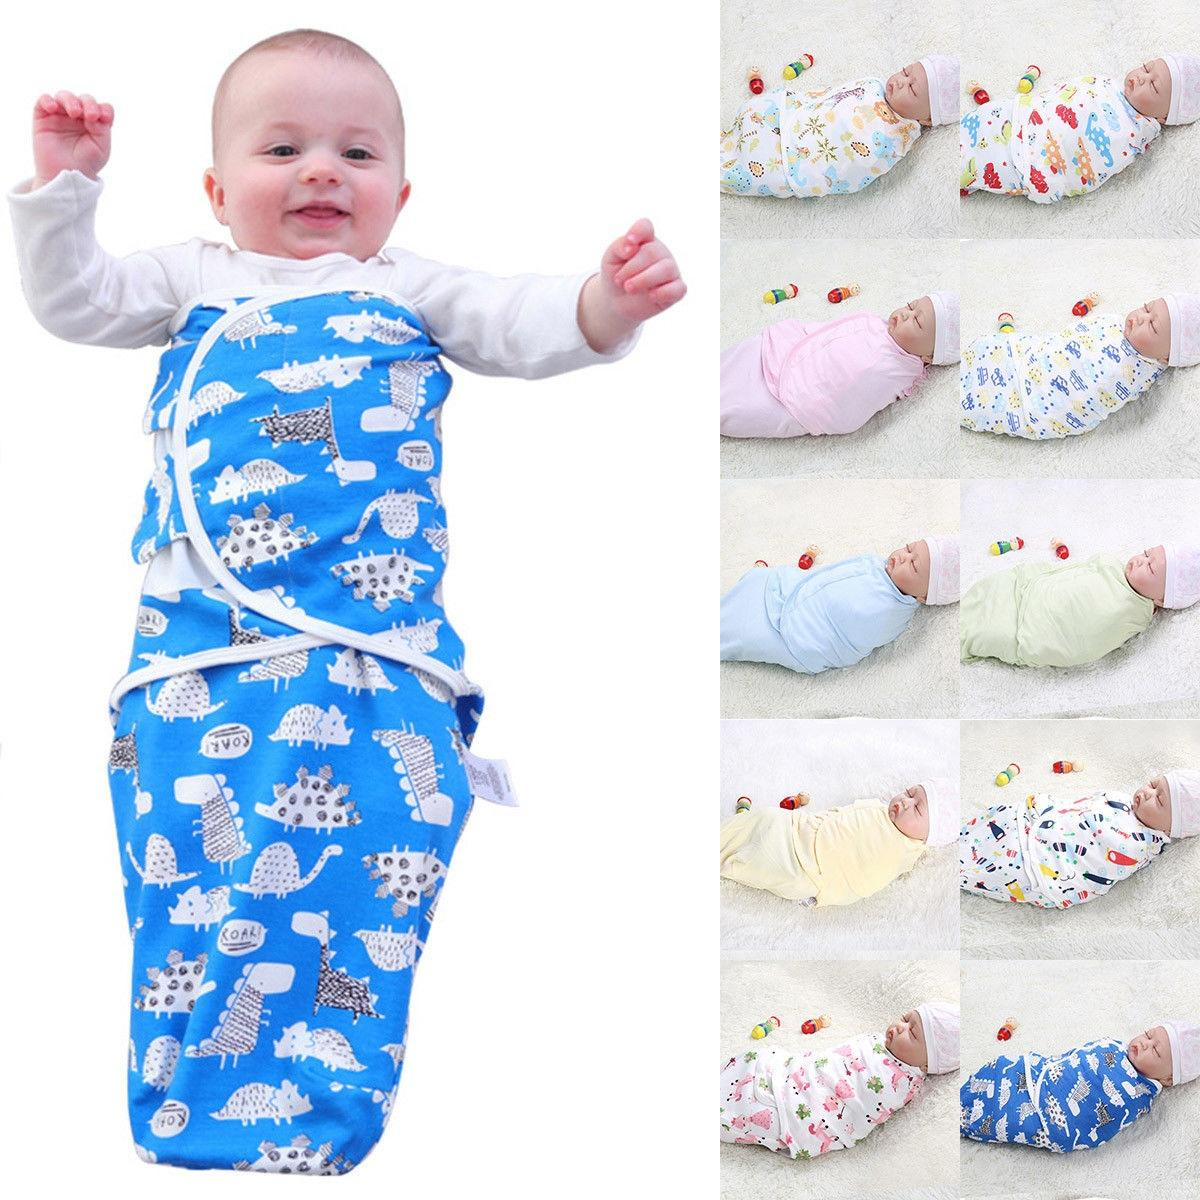 Newborn Lovely Baby Infant Cotton Anti Kick Quilt Addle Wrap